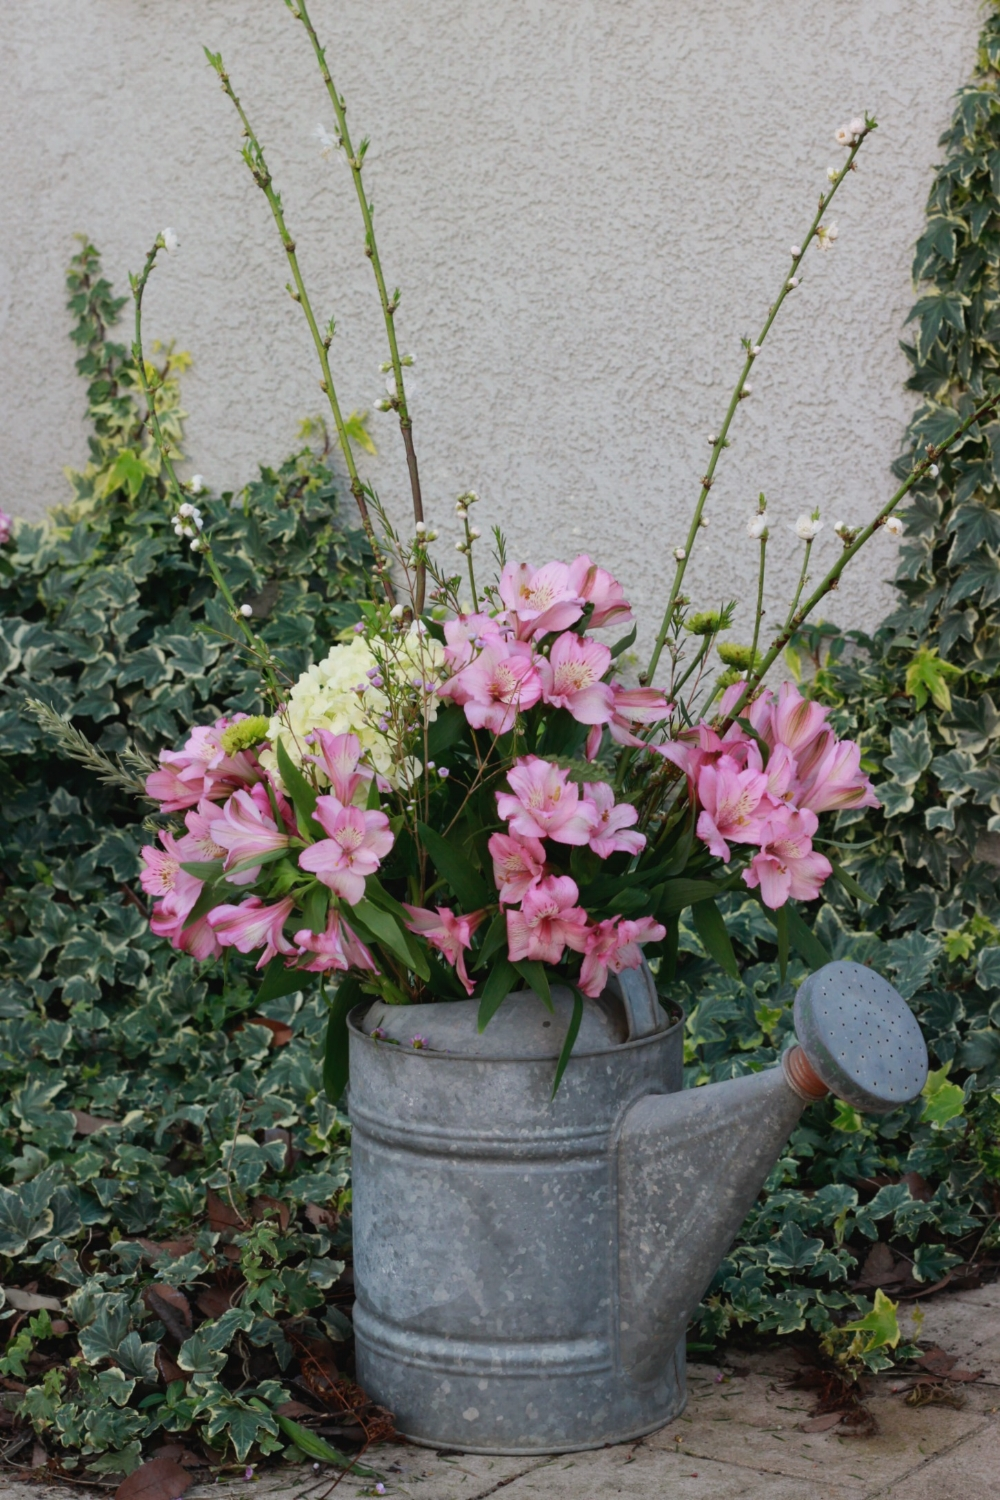 Waterung Can with Flowers.jpg